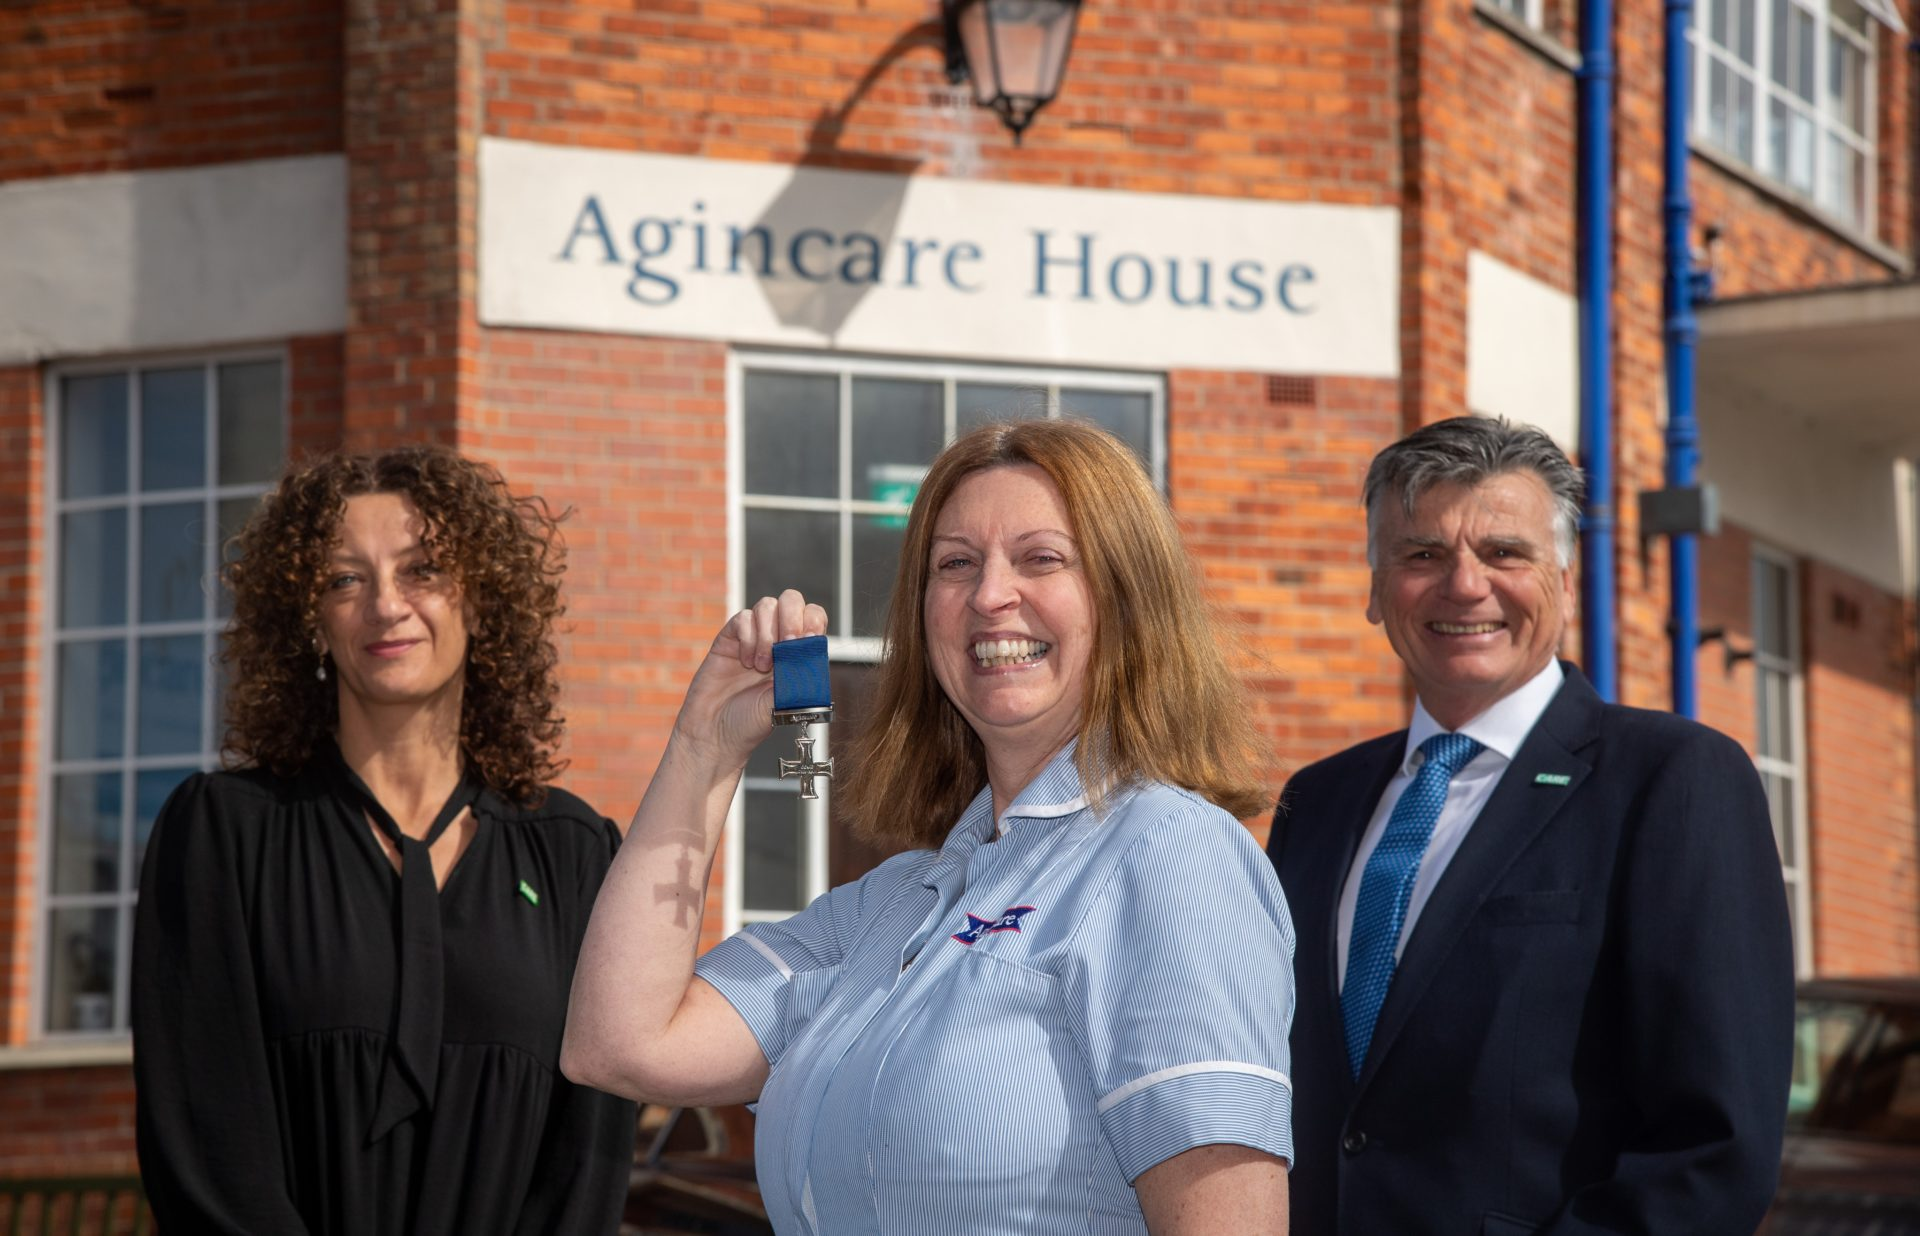 Agincare Covid Medals Picture: Finnbarr Webster